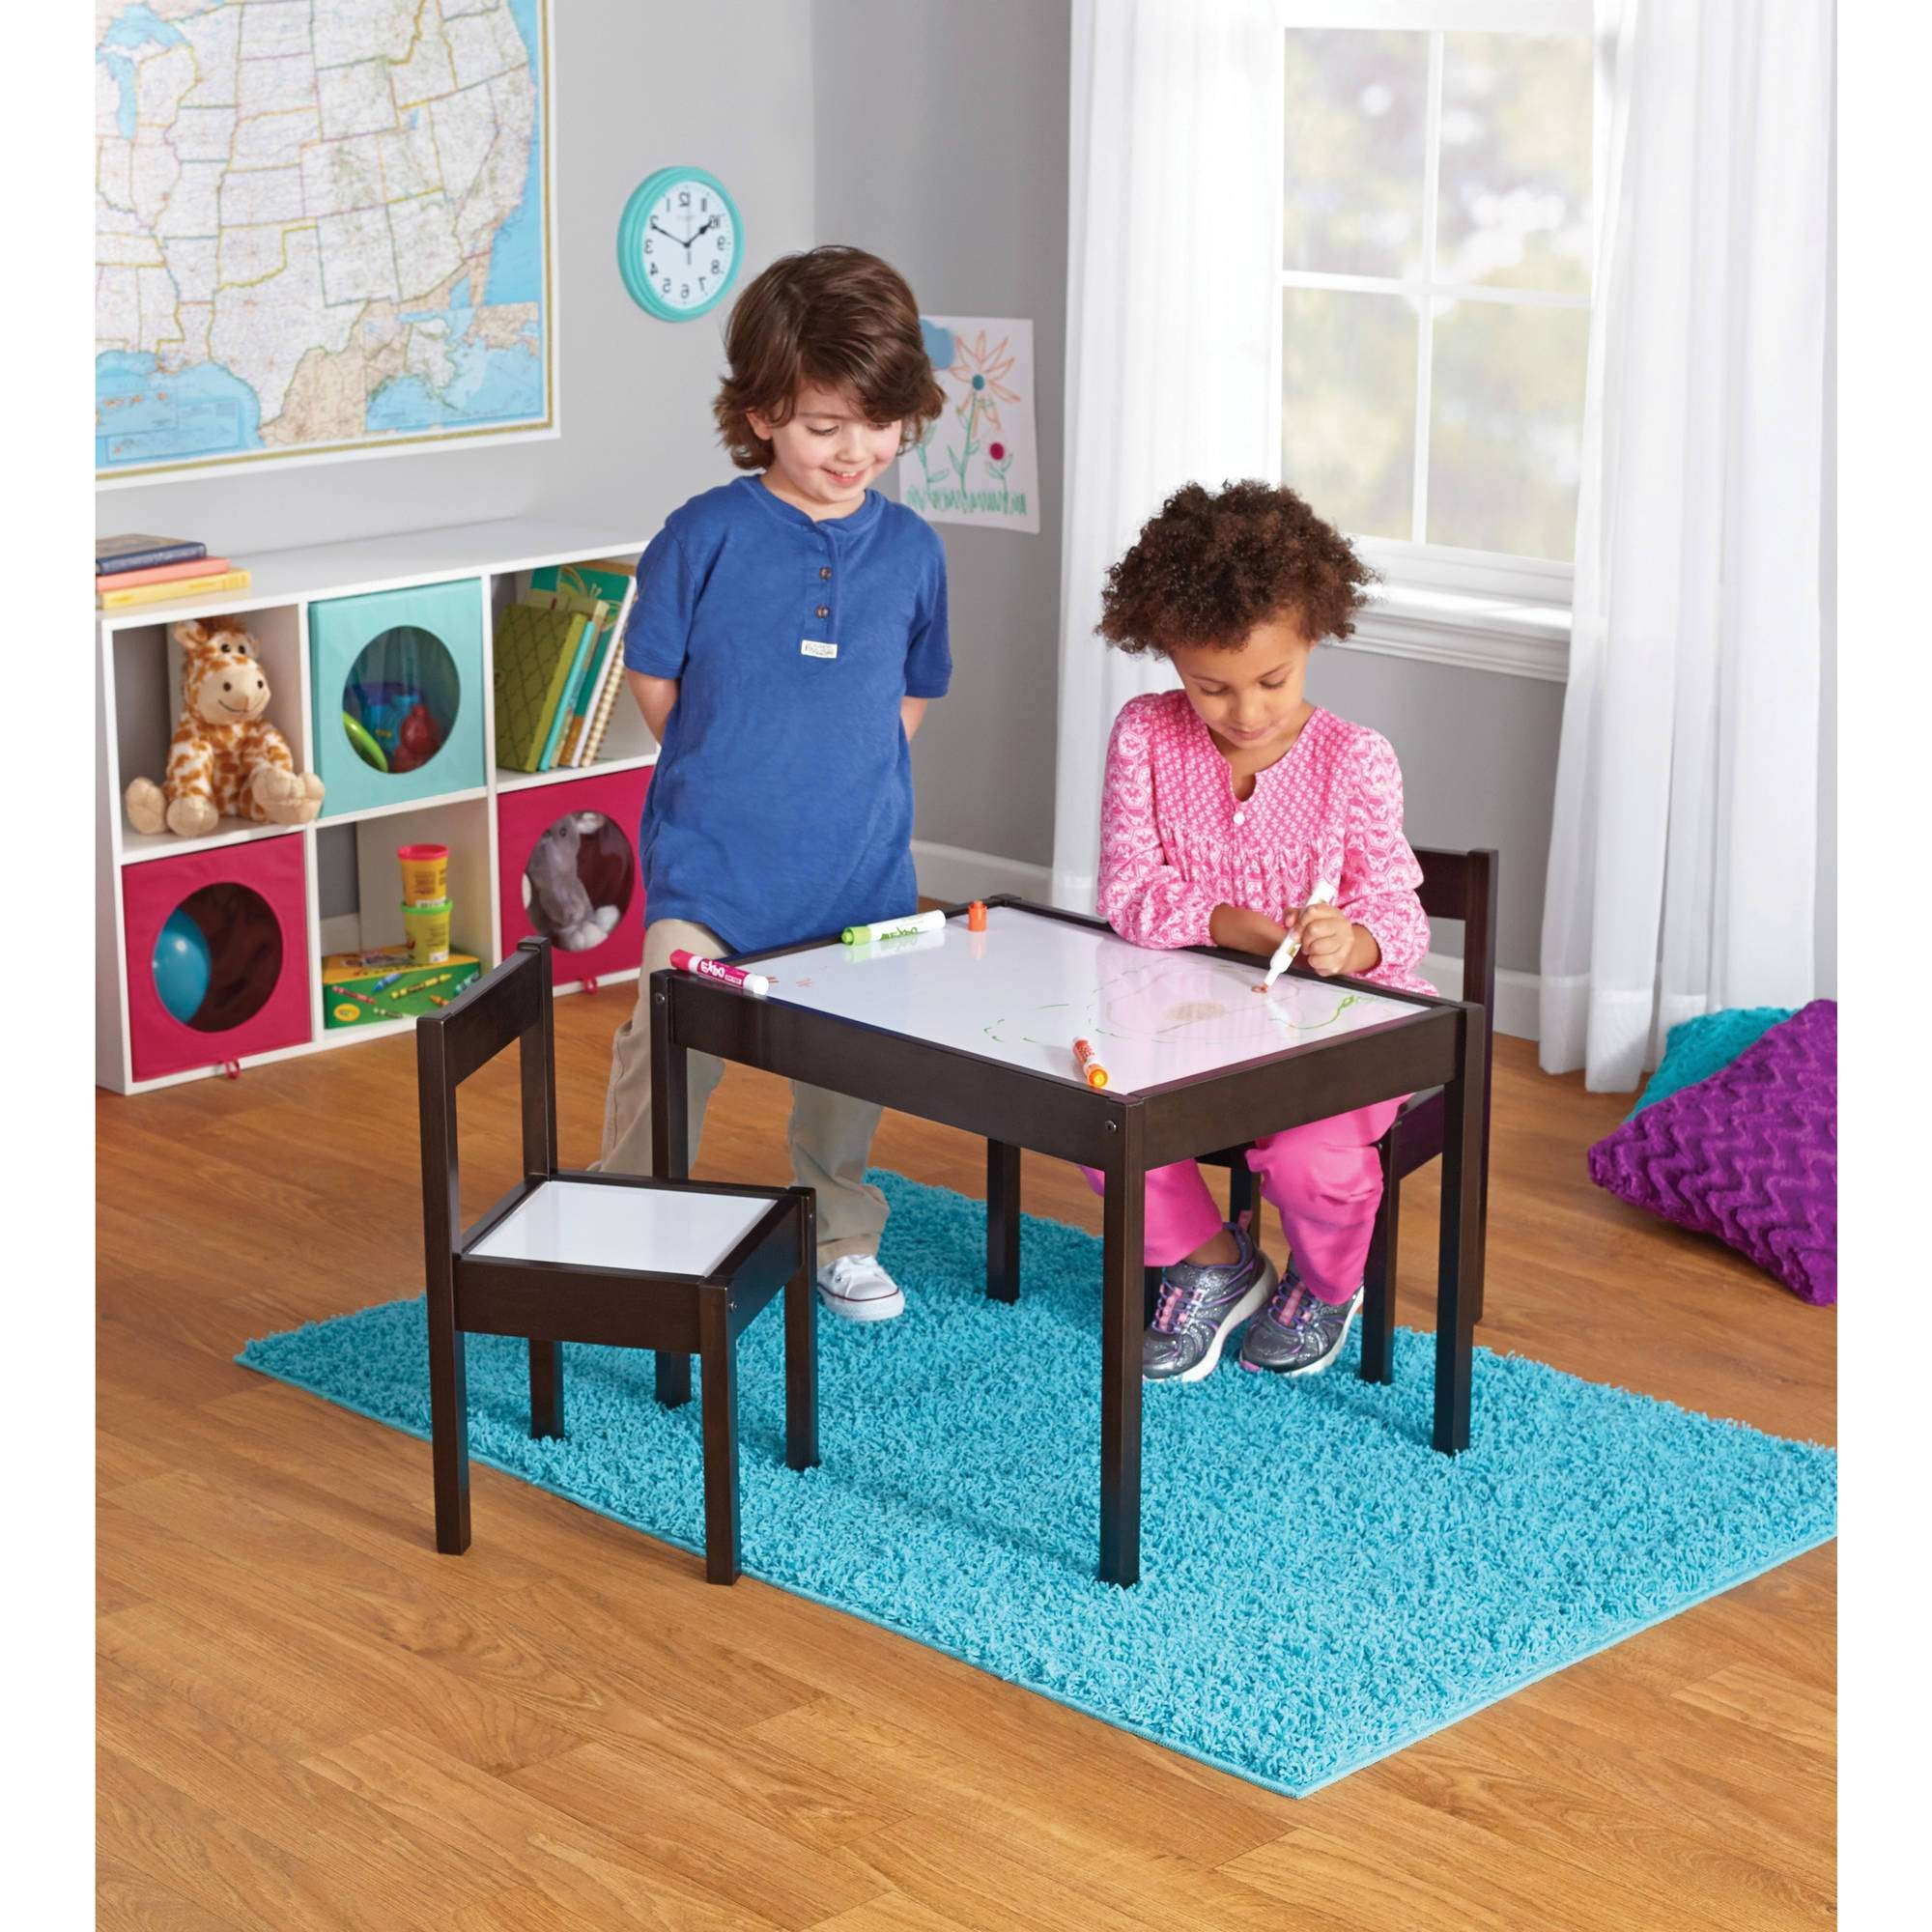 3 Piece Children's Table And Chairs, Espresso – Walmart Intended For Preferred Kids Coffee Tables (View 8 of 20)